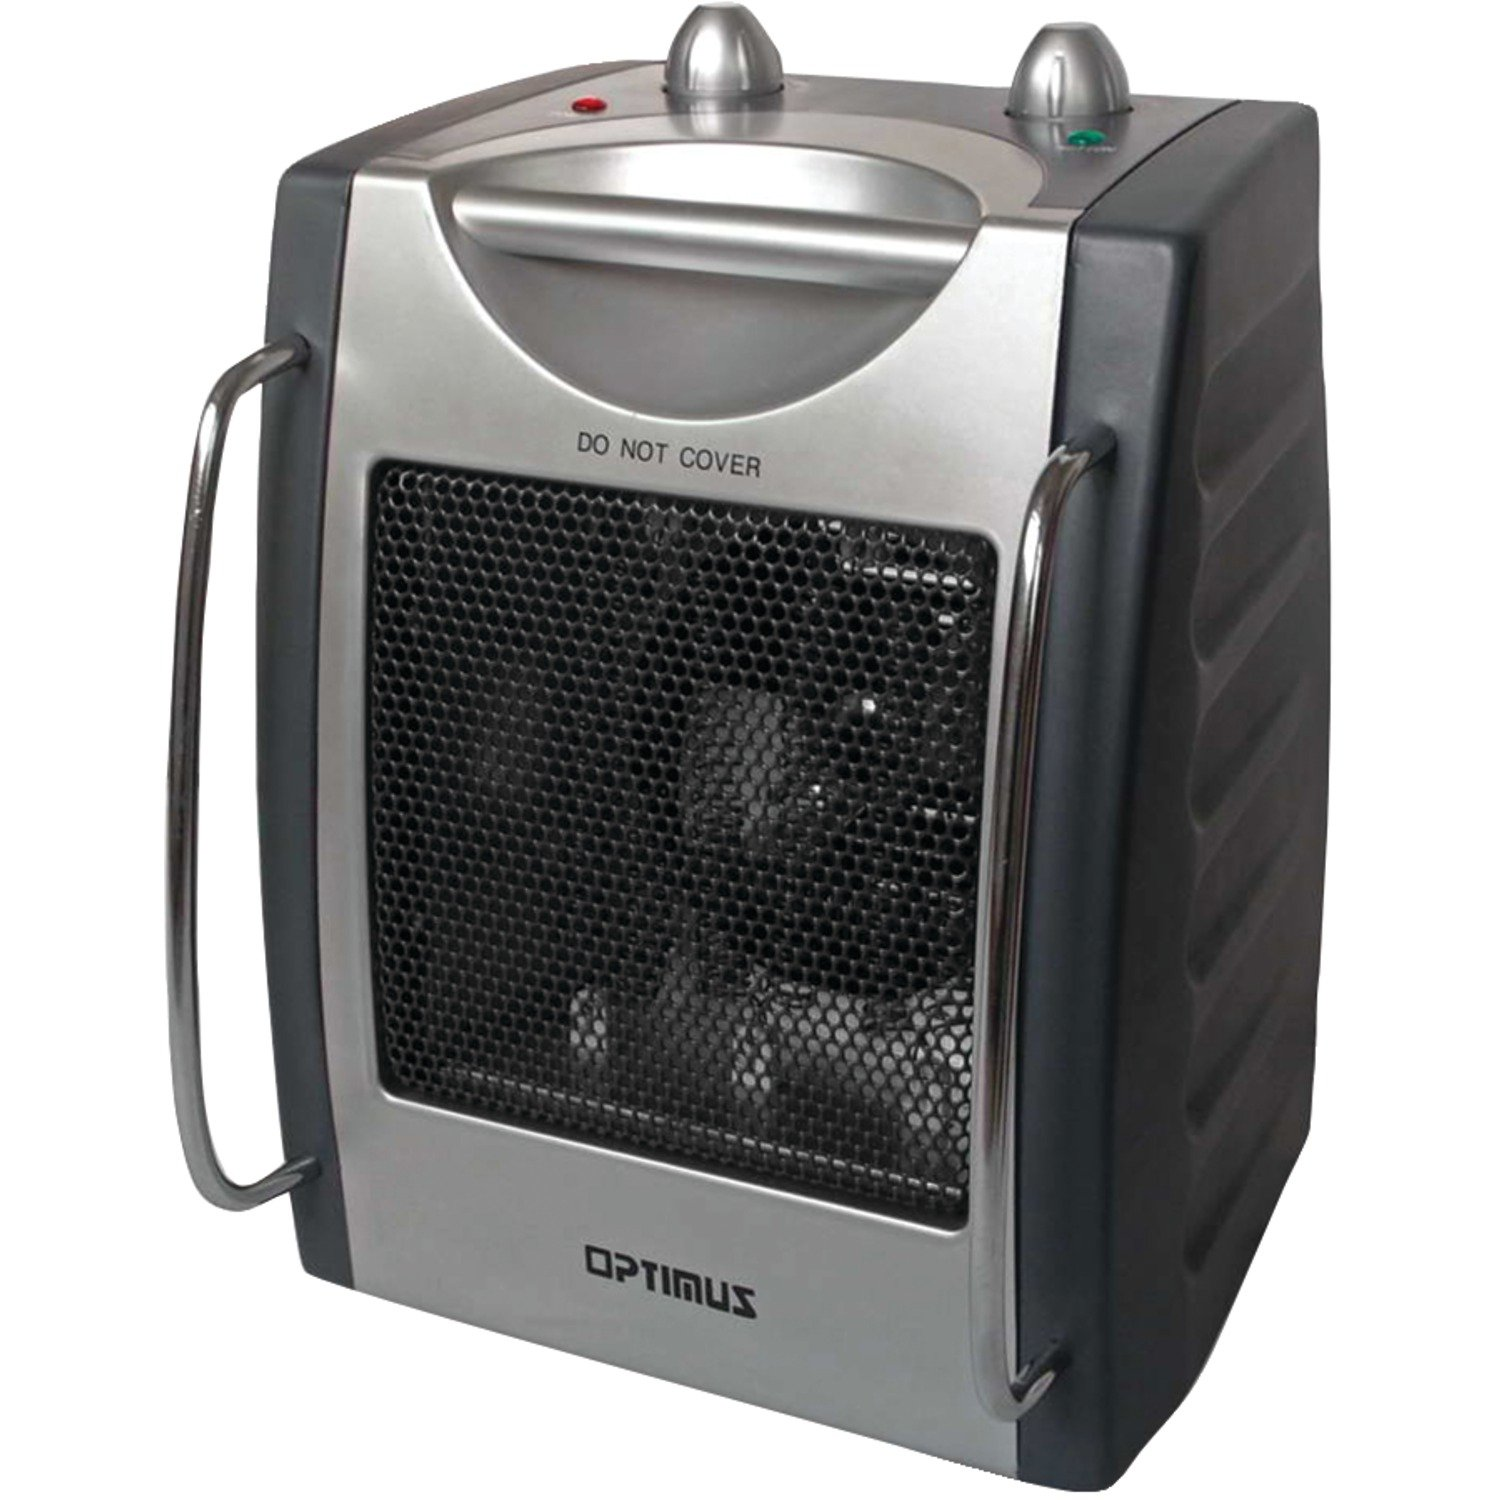 Amazon.com: Optimus H 3015 Portable Utility Heater With Thermostat: Home U0026  Kitchen